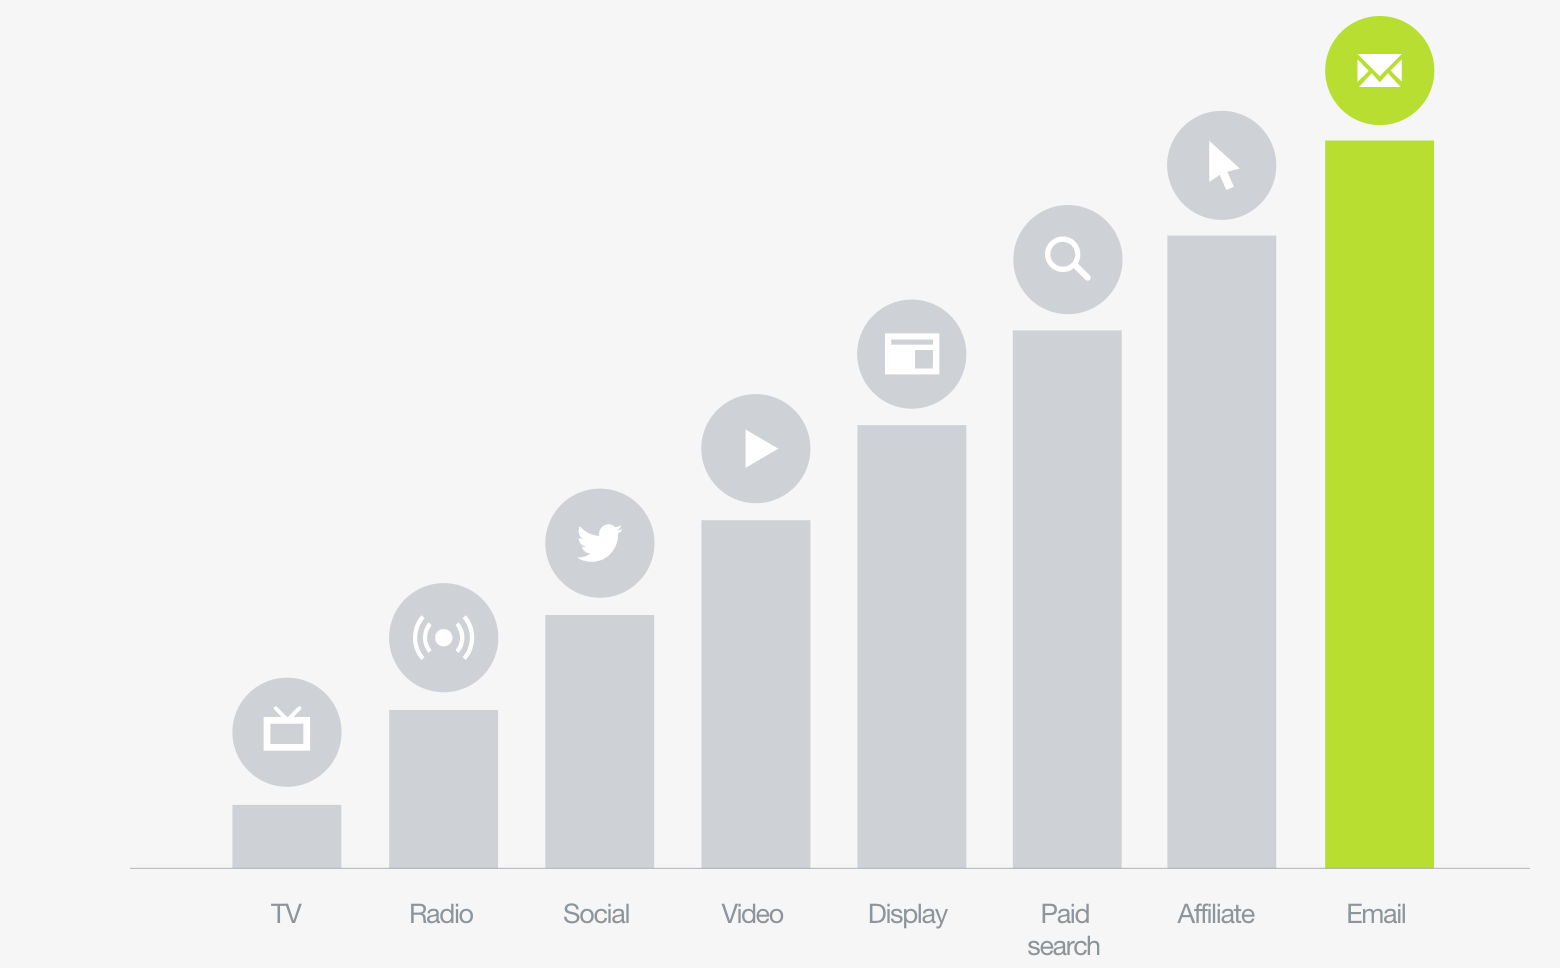 Chart from Campaign Monitor showing email as the highest-ROI marketing channel.